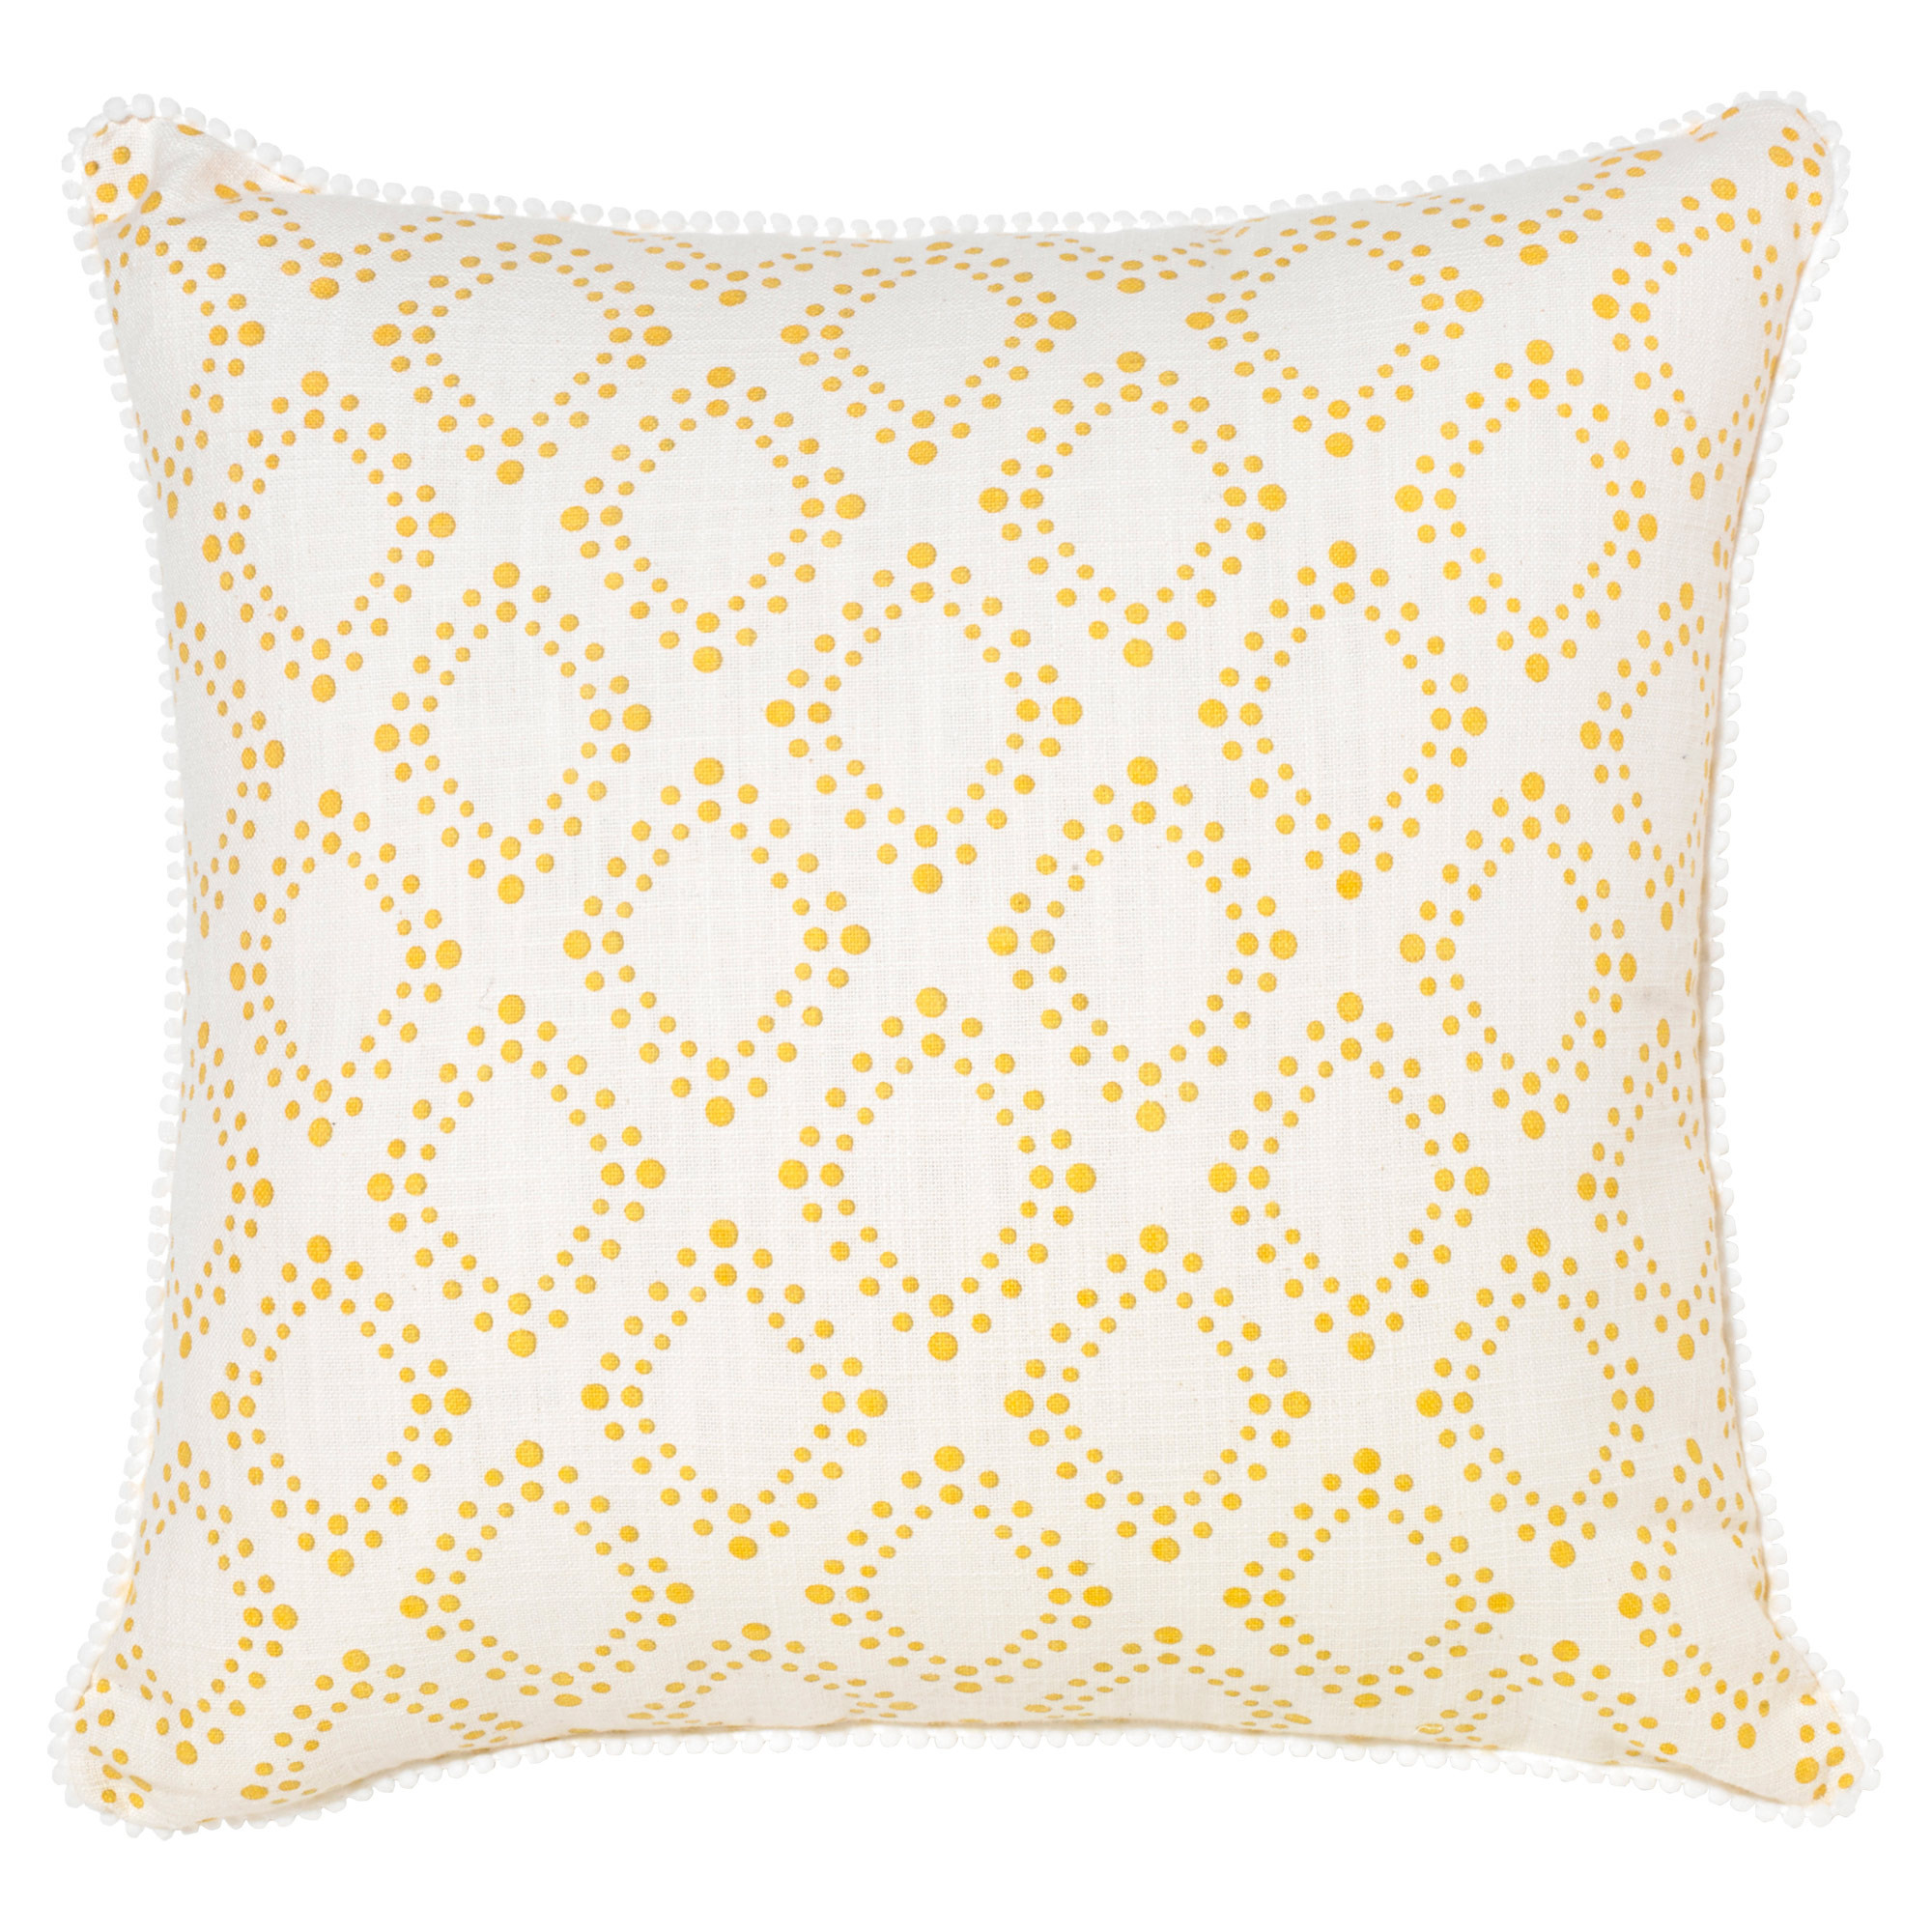 Spiva Modern Classic Dotted Yellow Ivory Pillow - 18x18